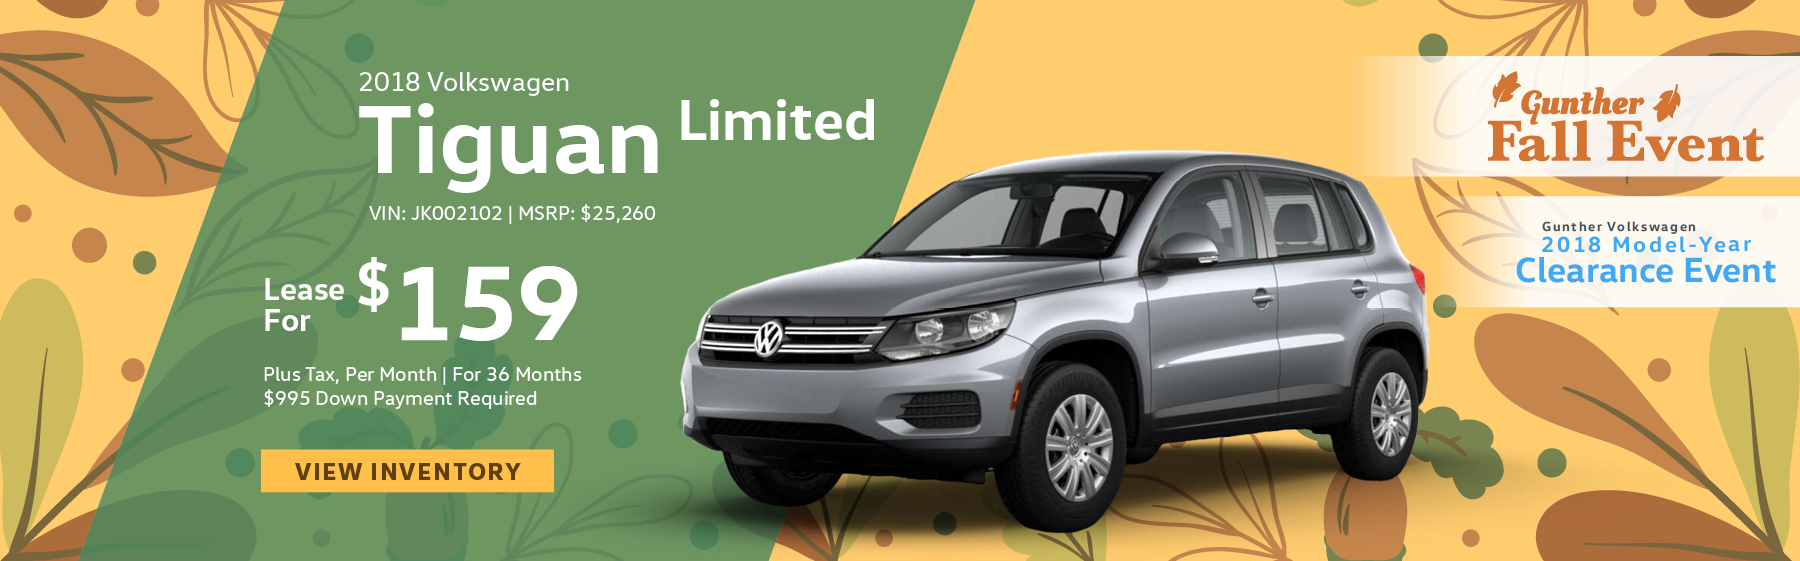 Lease the 2018 Volkswagen Tiguan Limited for $159 per month, plus tax for 36 months. Click here to view inventory.